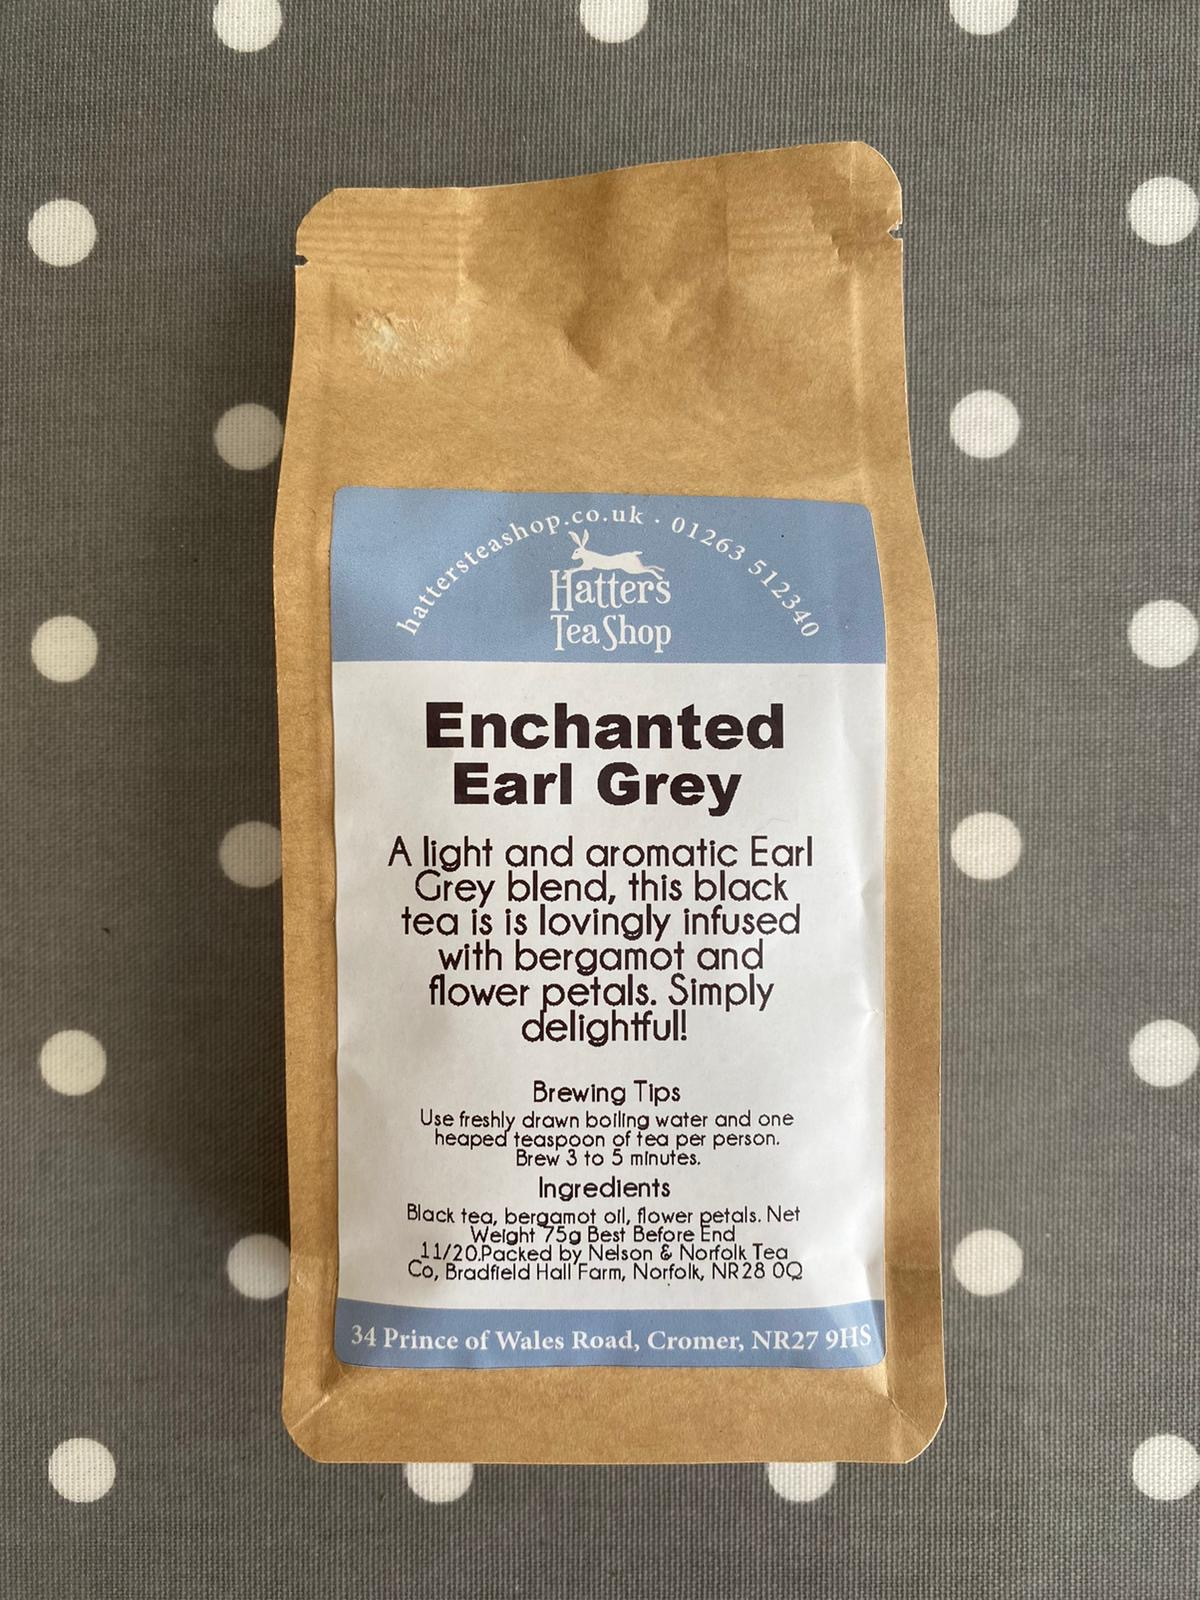 Hatters Loose Leaf Tea - Enchanted Earl Grey